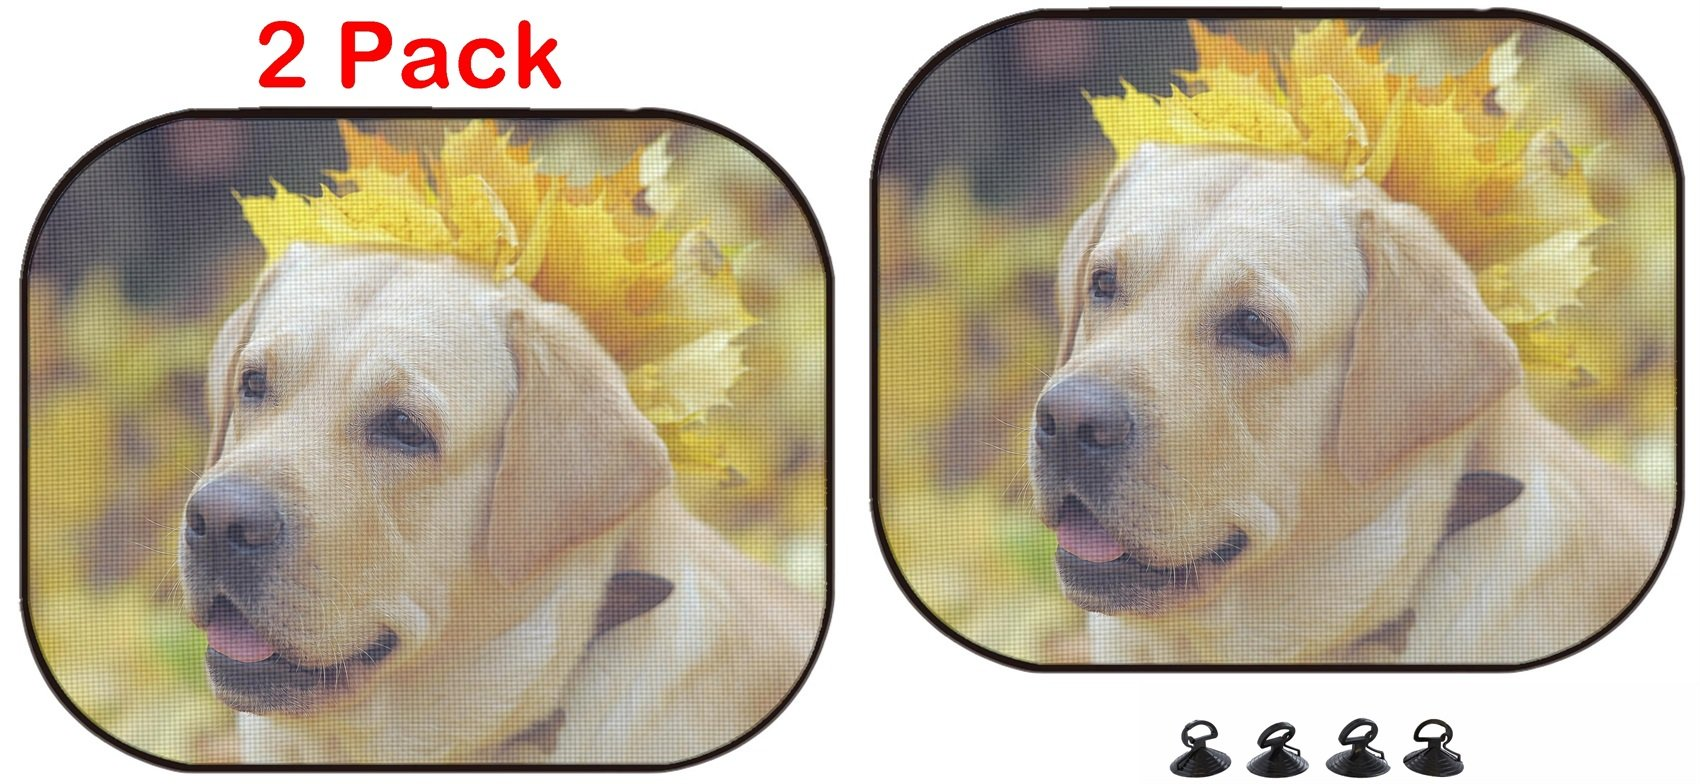 Luxlady Car Sun Shade Protector Block Damaging UV Rays Sunlight Heat for All Vehicles, 2 Pack Image ID: 34431368 Labrador Retriever in Autumn Leaves by Luxlady